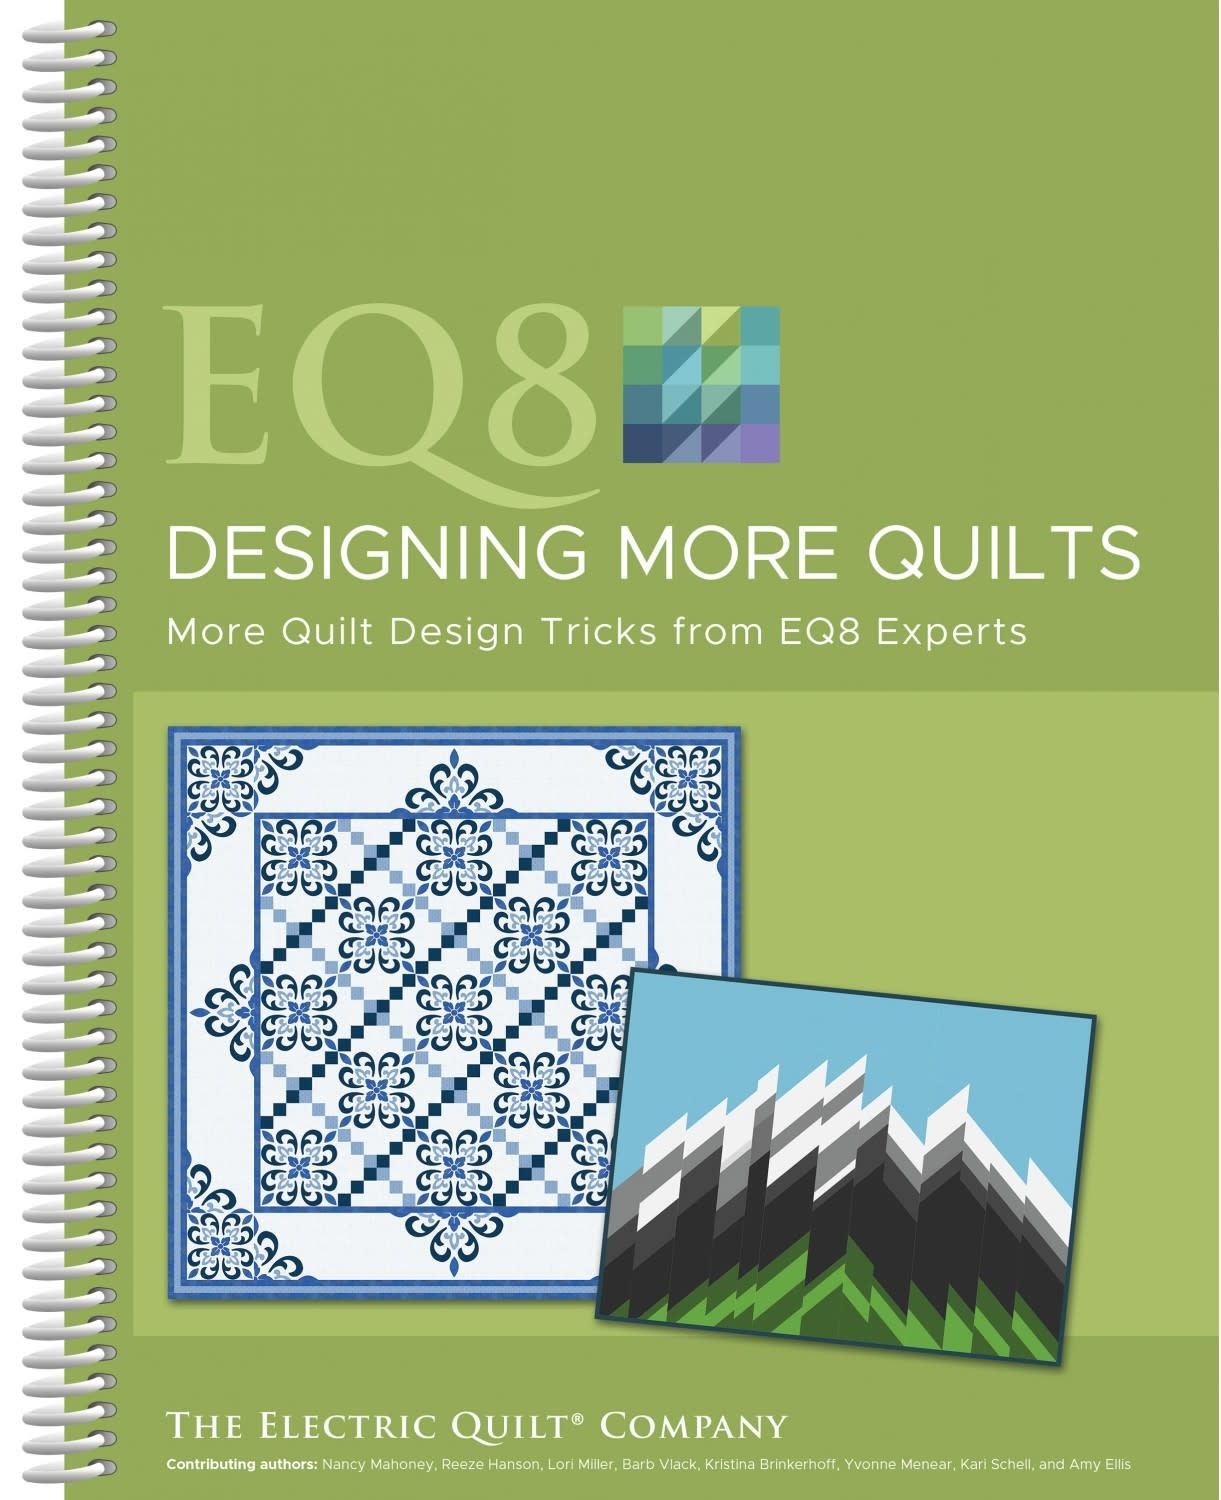 ELECTRIC QUILT COMPANY EQ8 Designing More Quilts